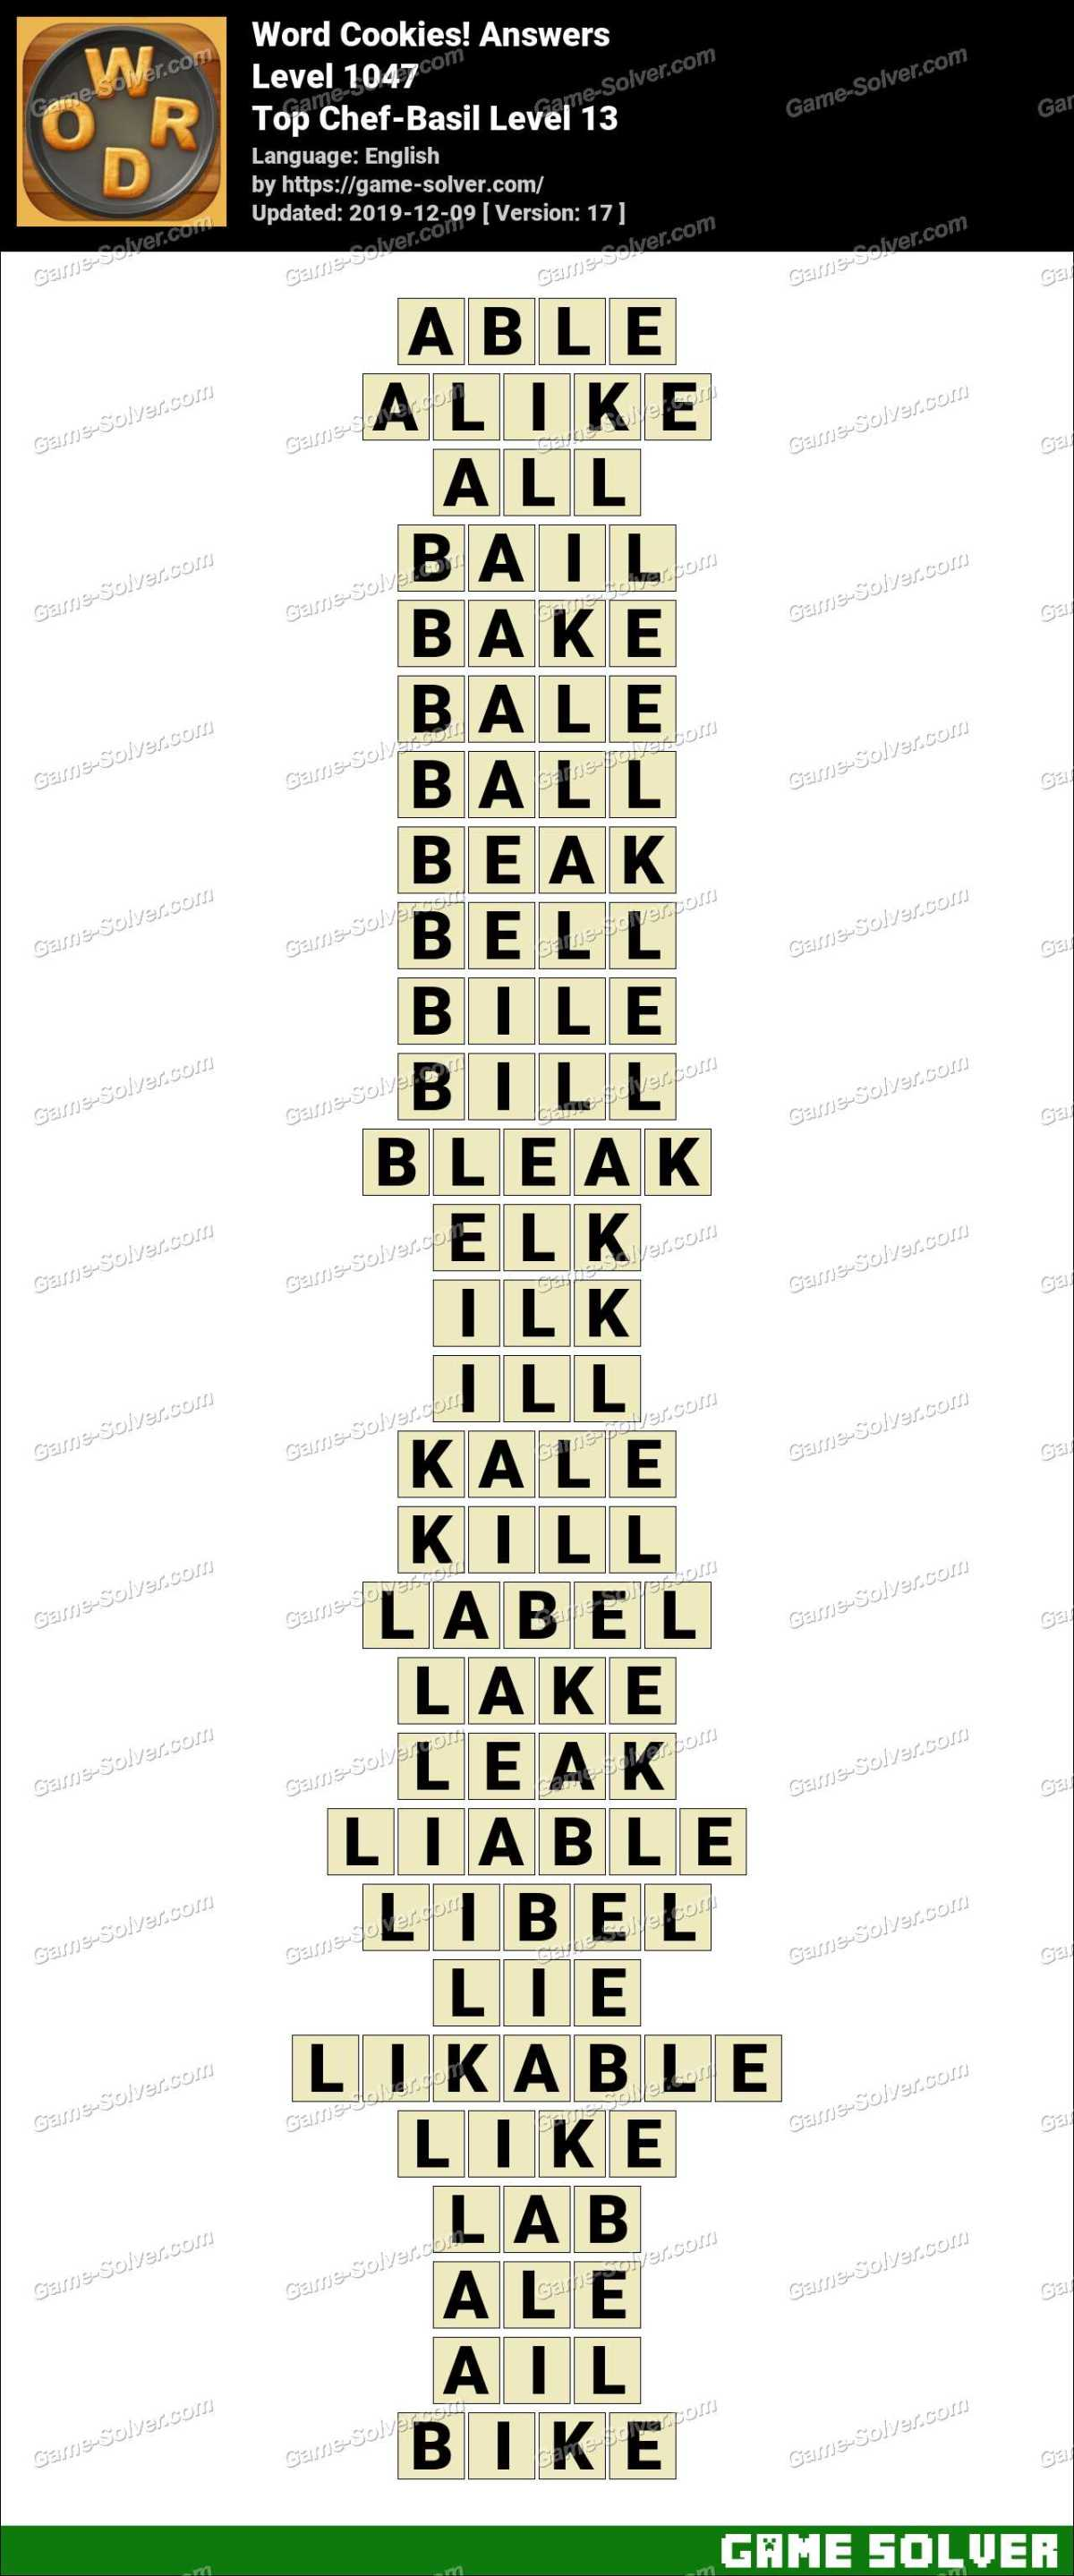 Word Cookies Top Chef-Basil Level 13 Answers